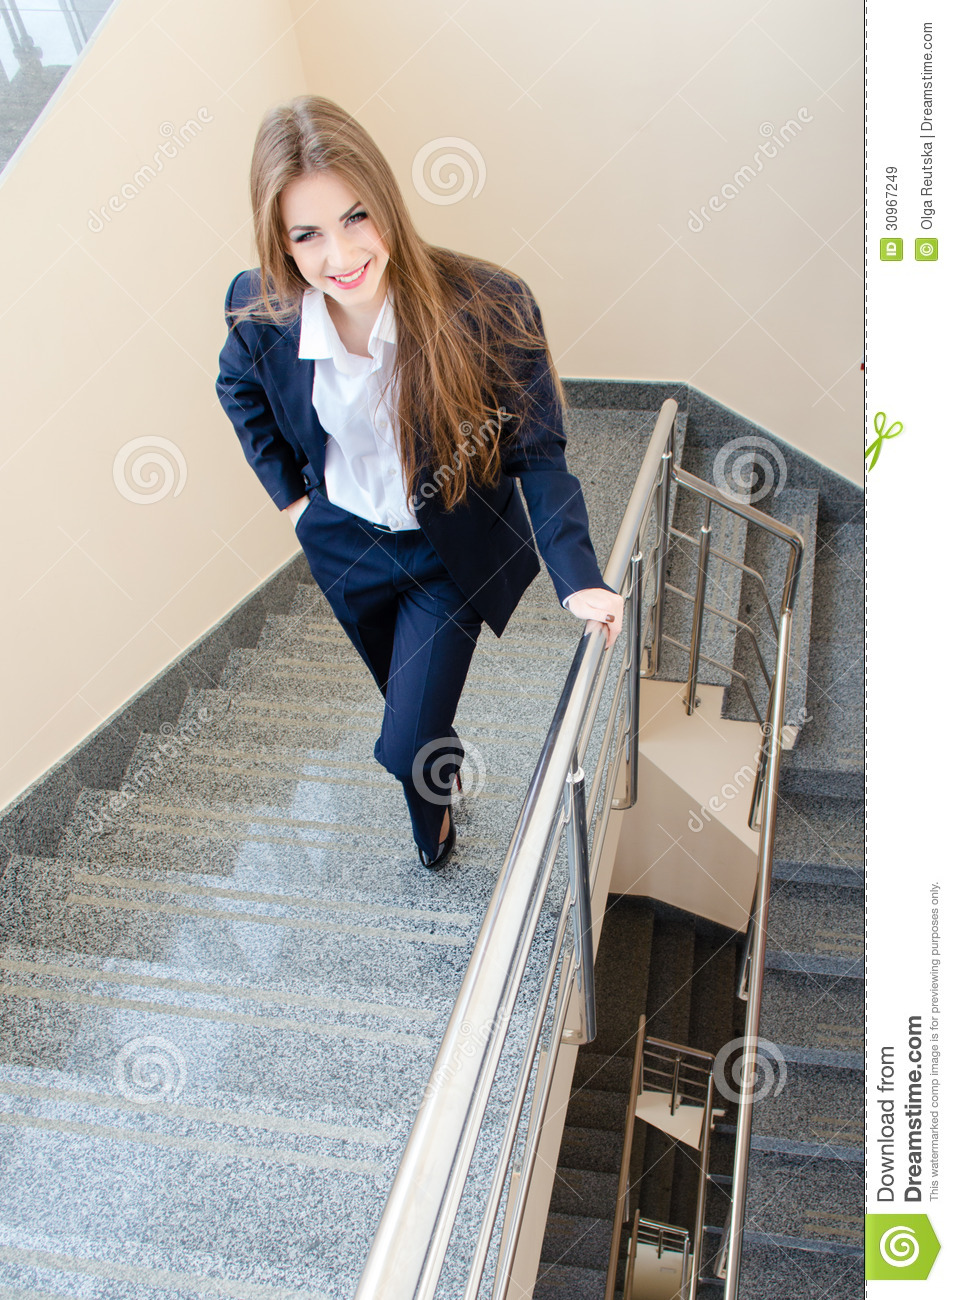 Young Business Woman Wearing Man S Suit Walking On Stairs